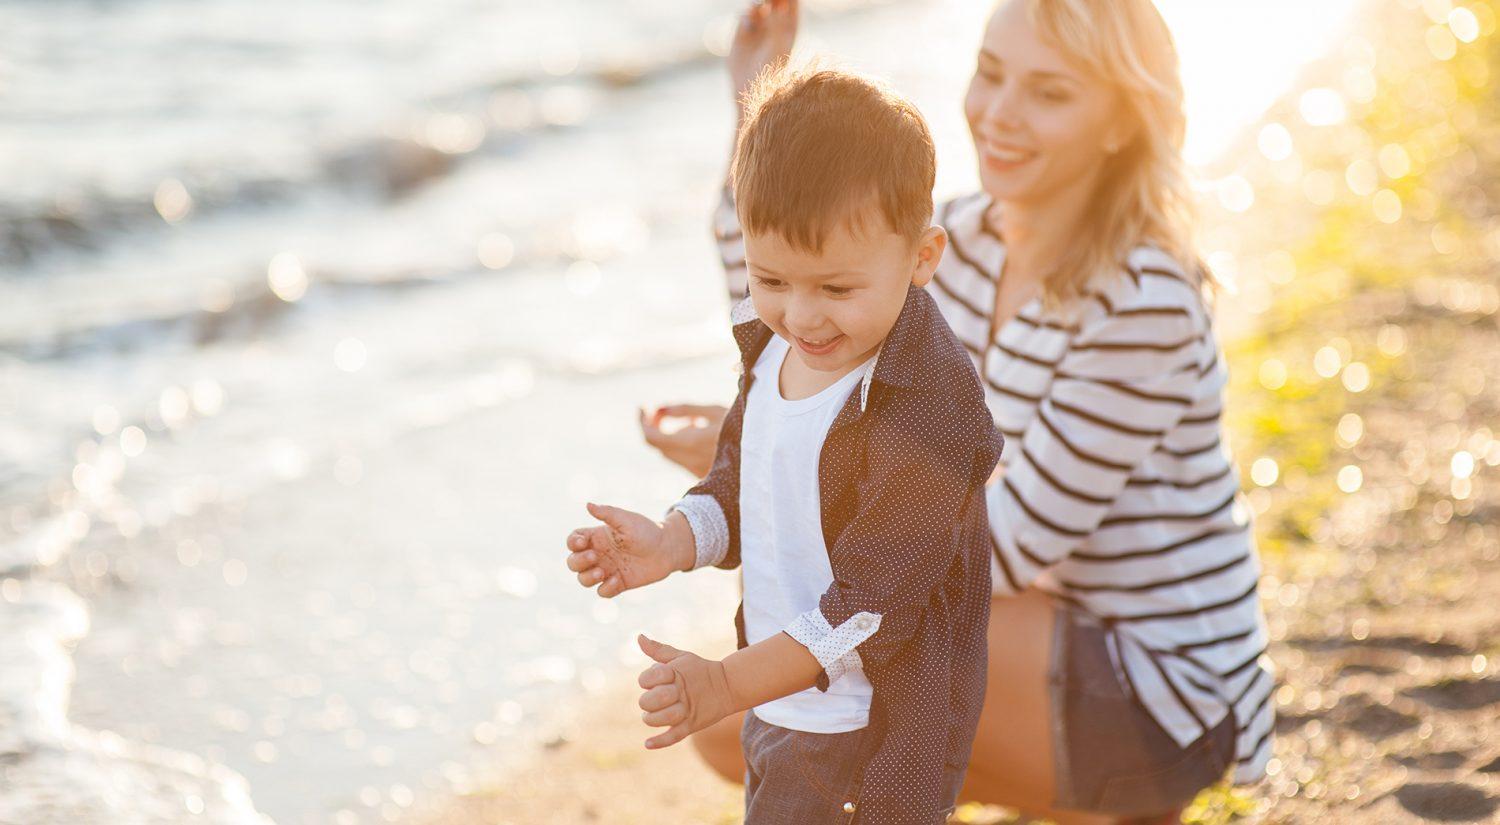 Carer playing with child on beach